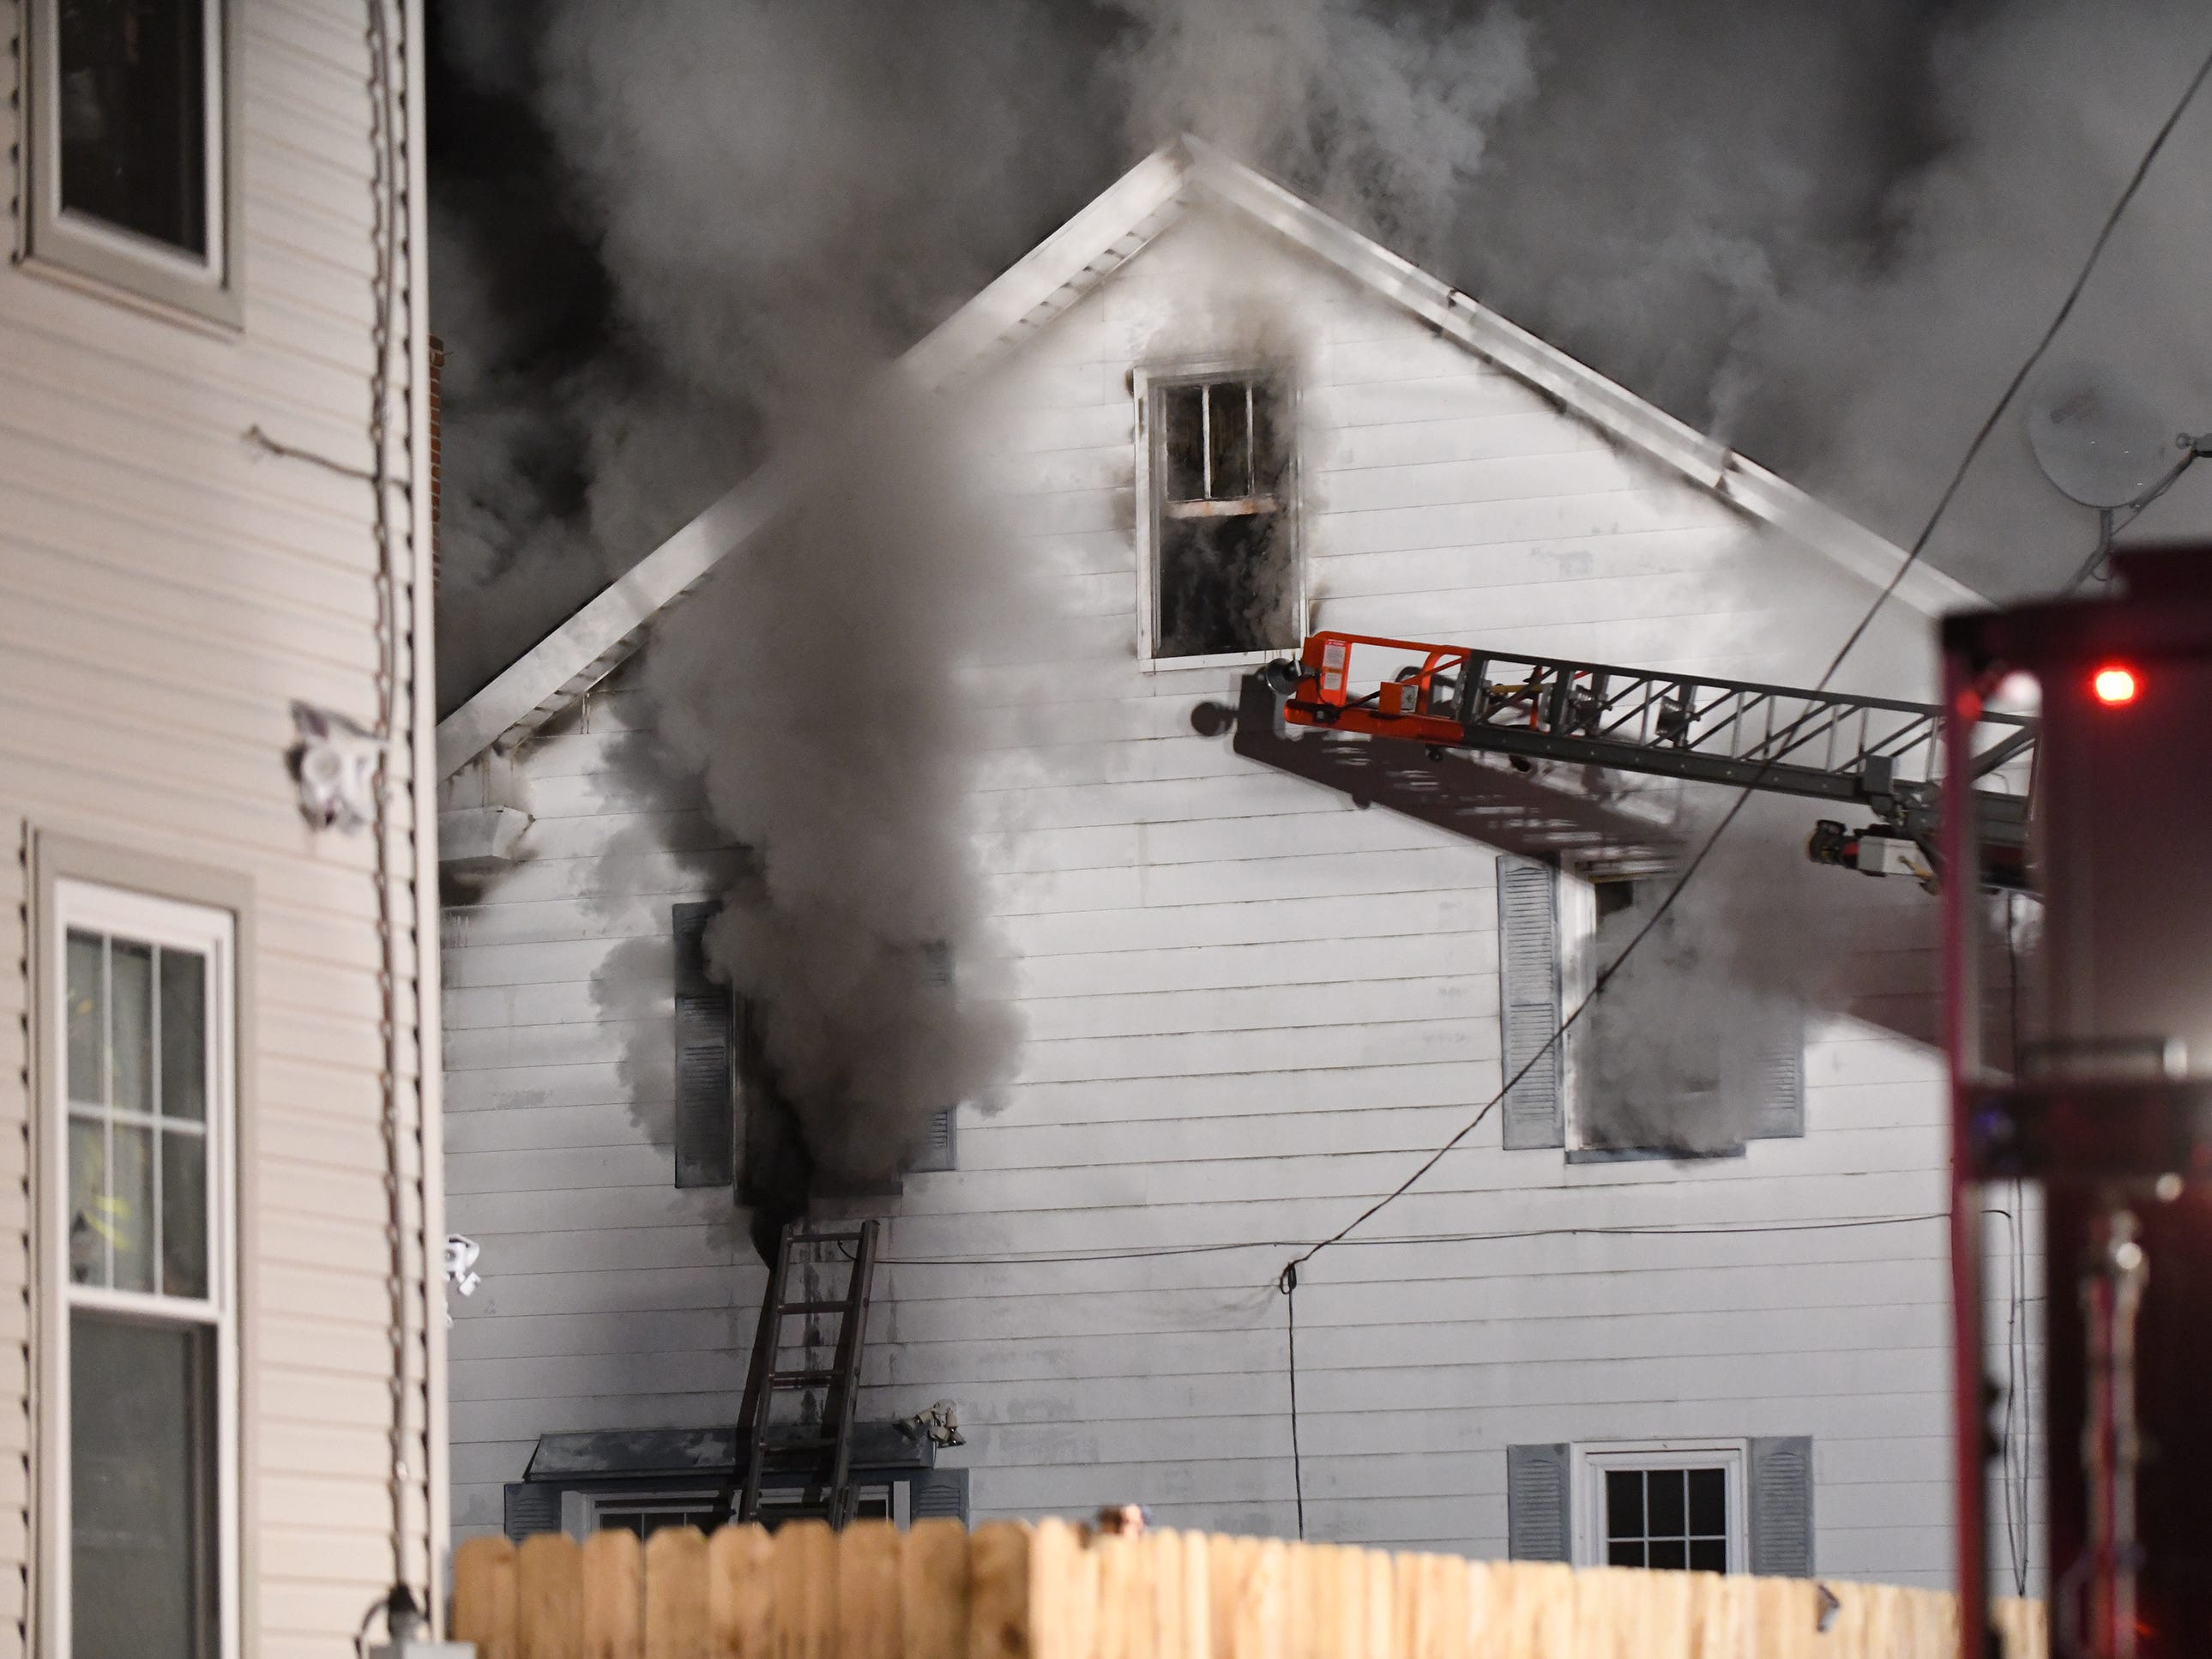 Firefighters in Millville battle a house blaze that ripped through a East Sassafras Street dwelling on Tuesday, Feb. 5, 2019.